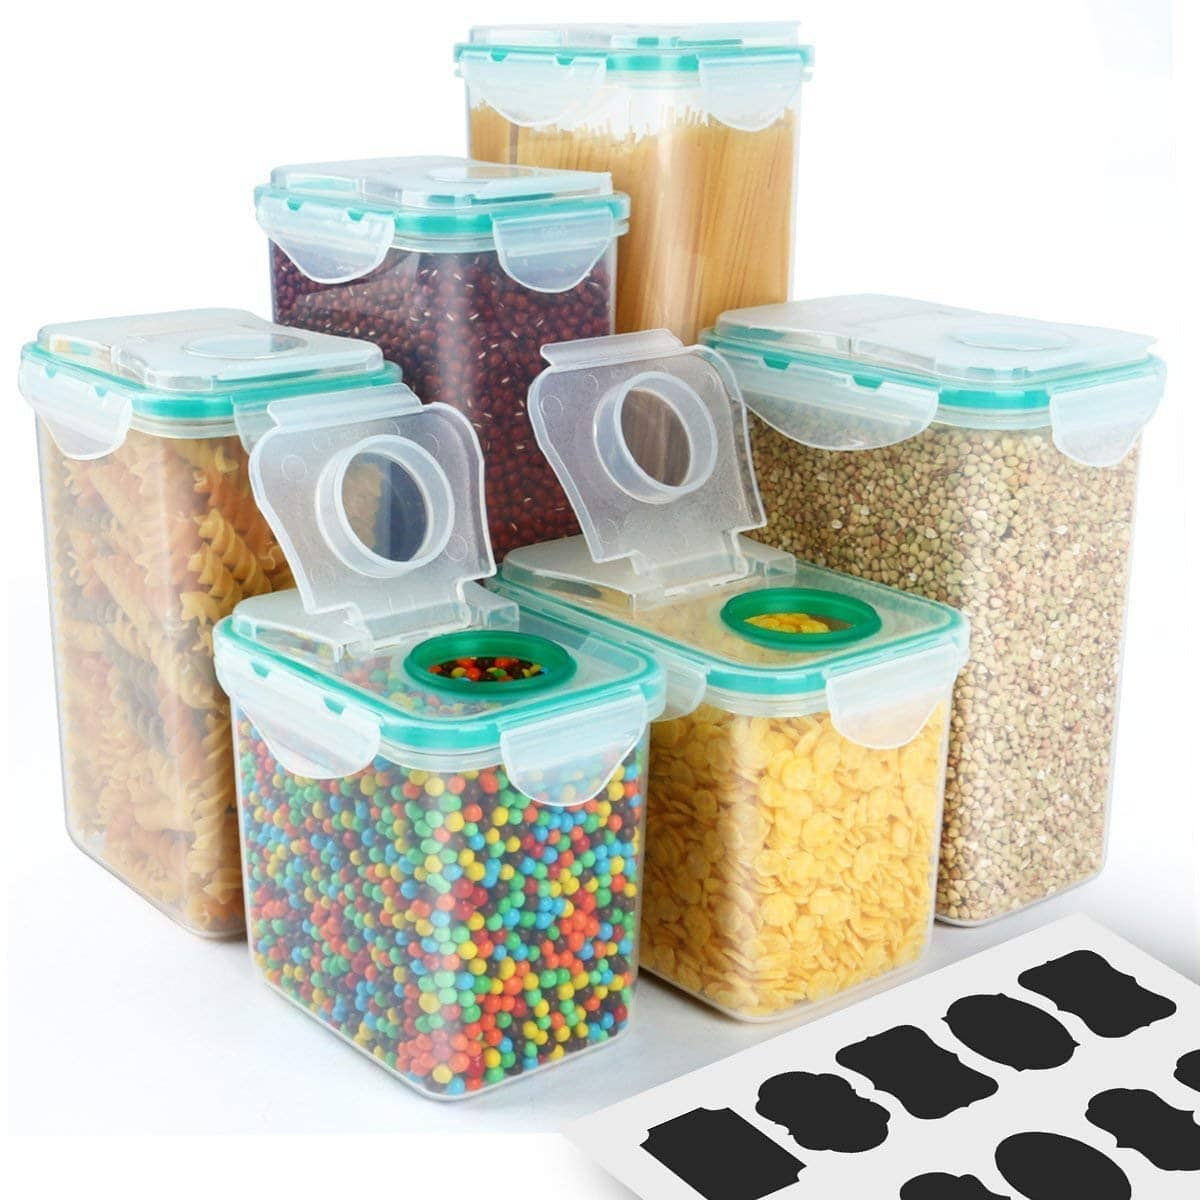 VERONES 6 Pack Airtight Plastic Storage Containers Perfect for Food Storage  Containers Kitchen Storage Containers $16.24 @Amazon +FS